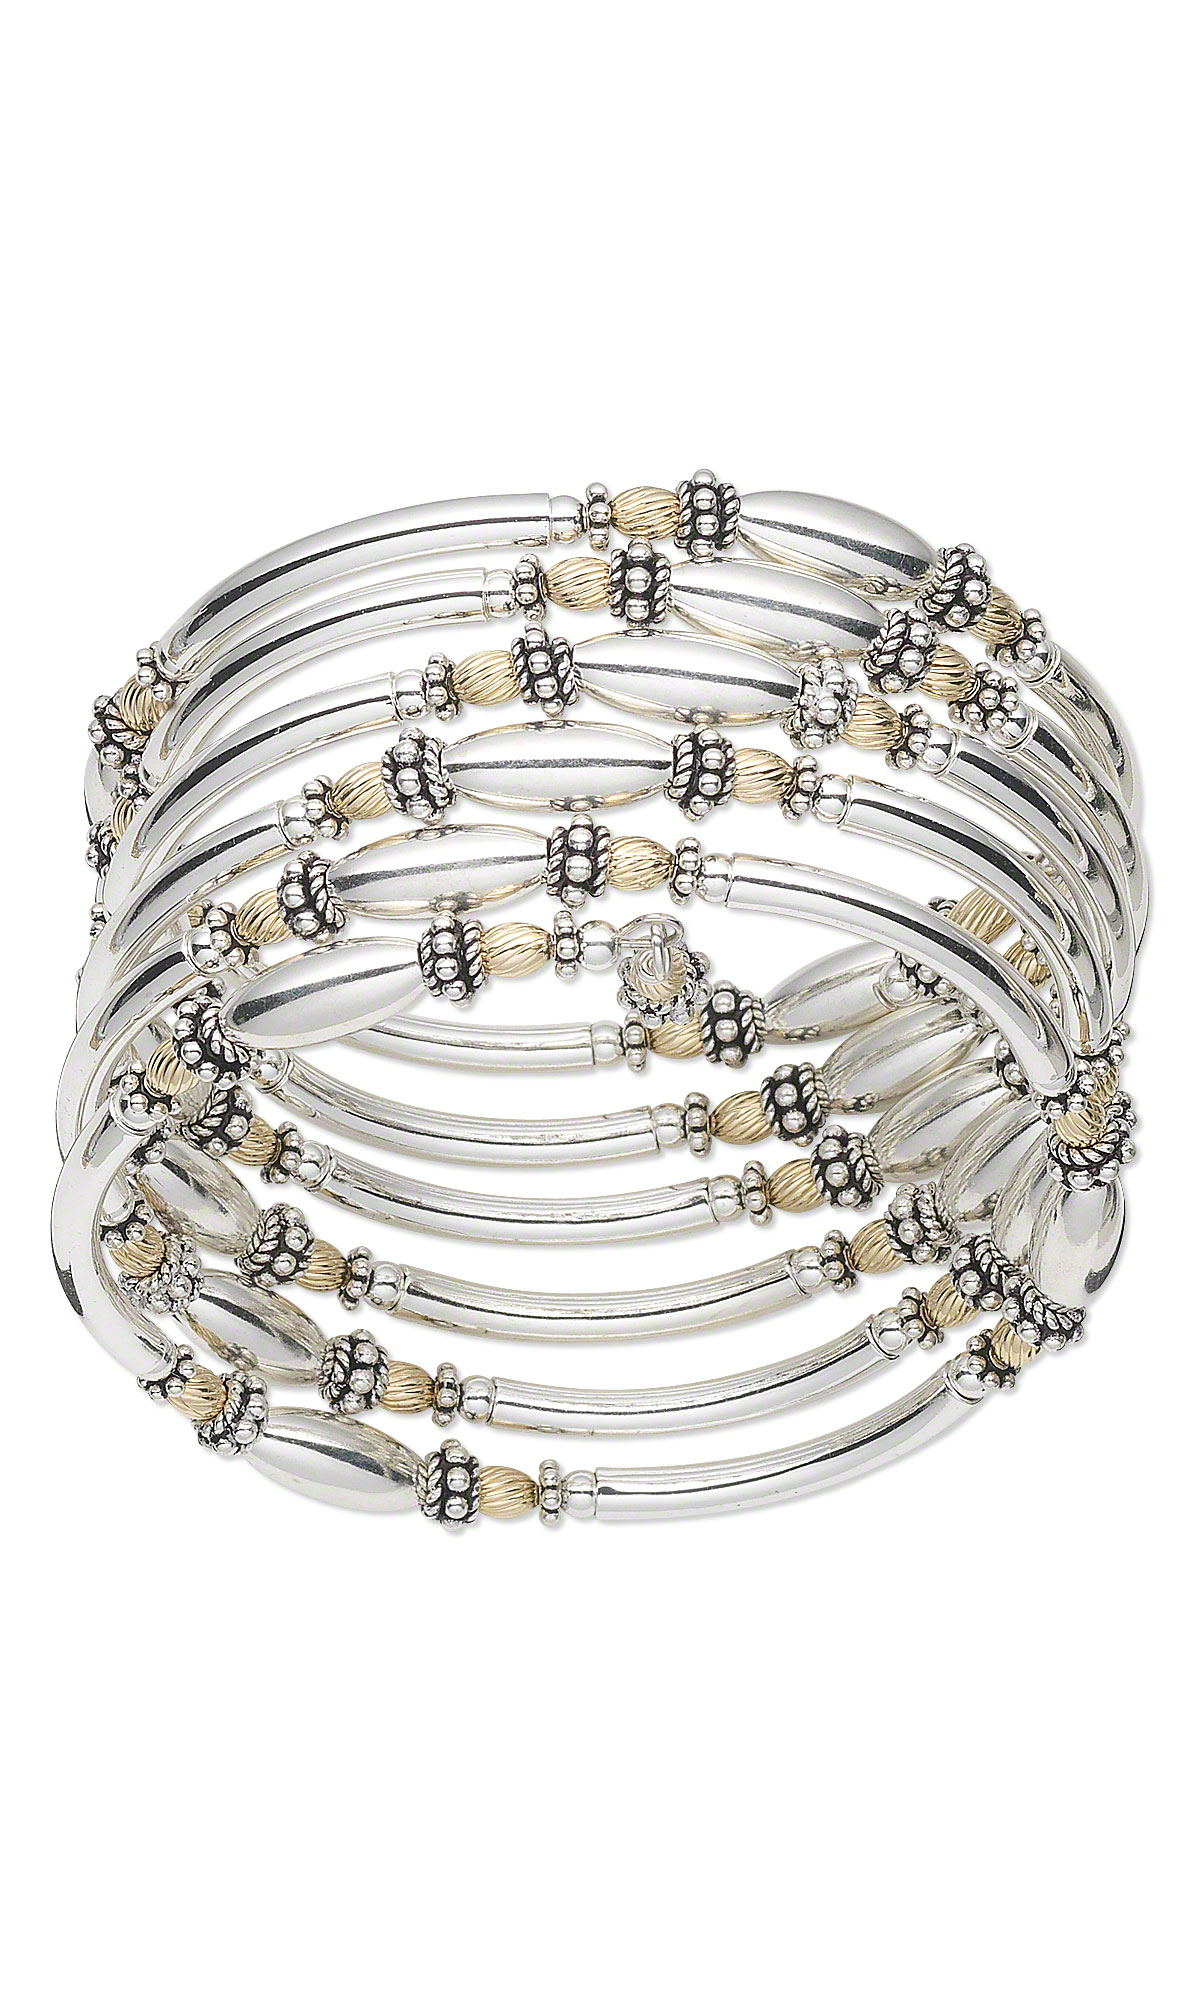 Jewelry Design - Bracelet with Sterling Silver Beads and Memory Wire ...